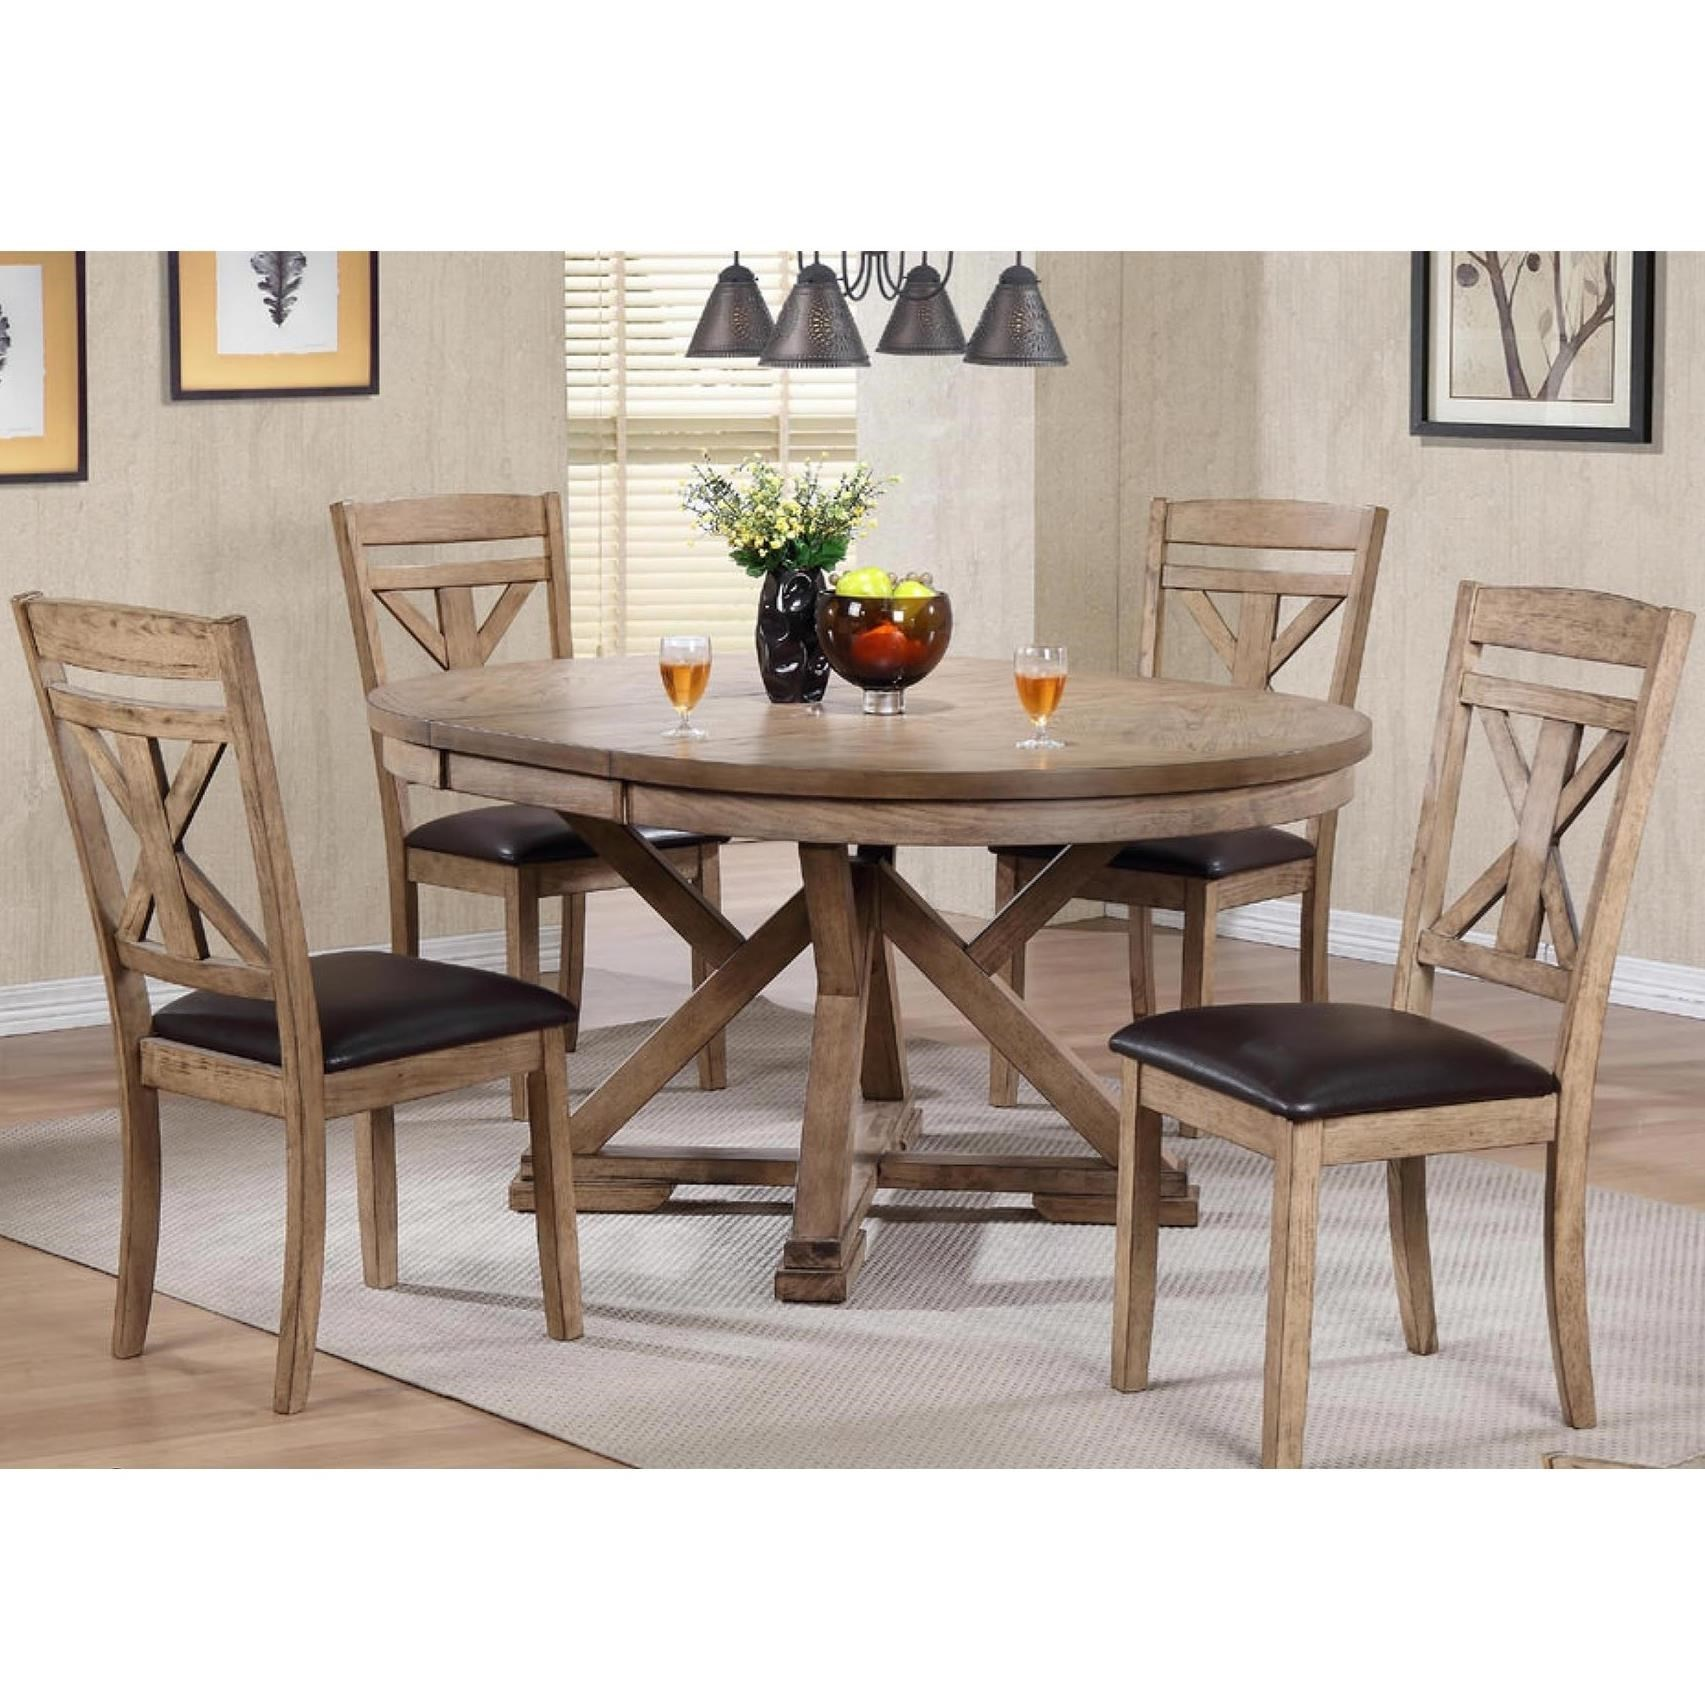 Attractive Grandview 5 Piece Dining Set By Winners Only